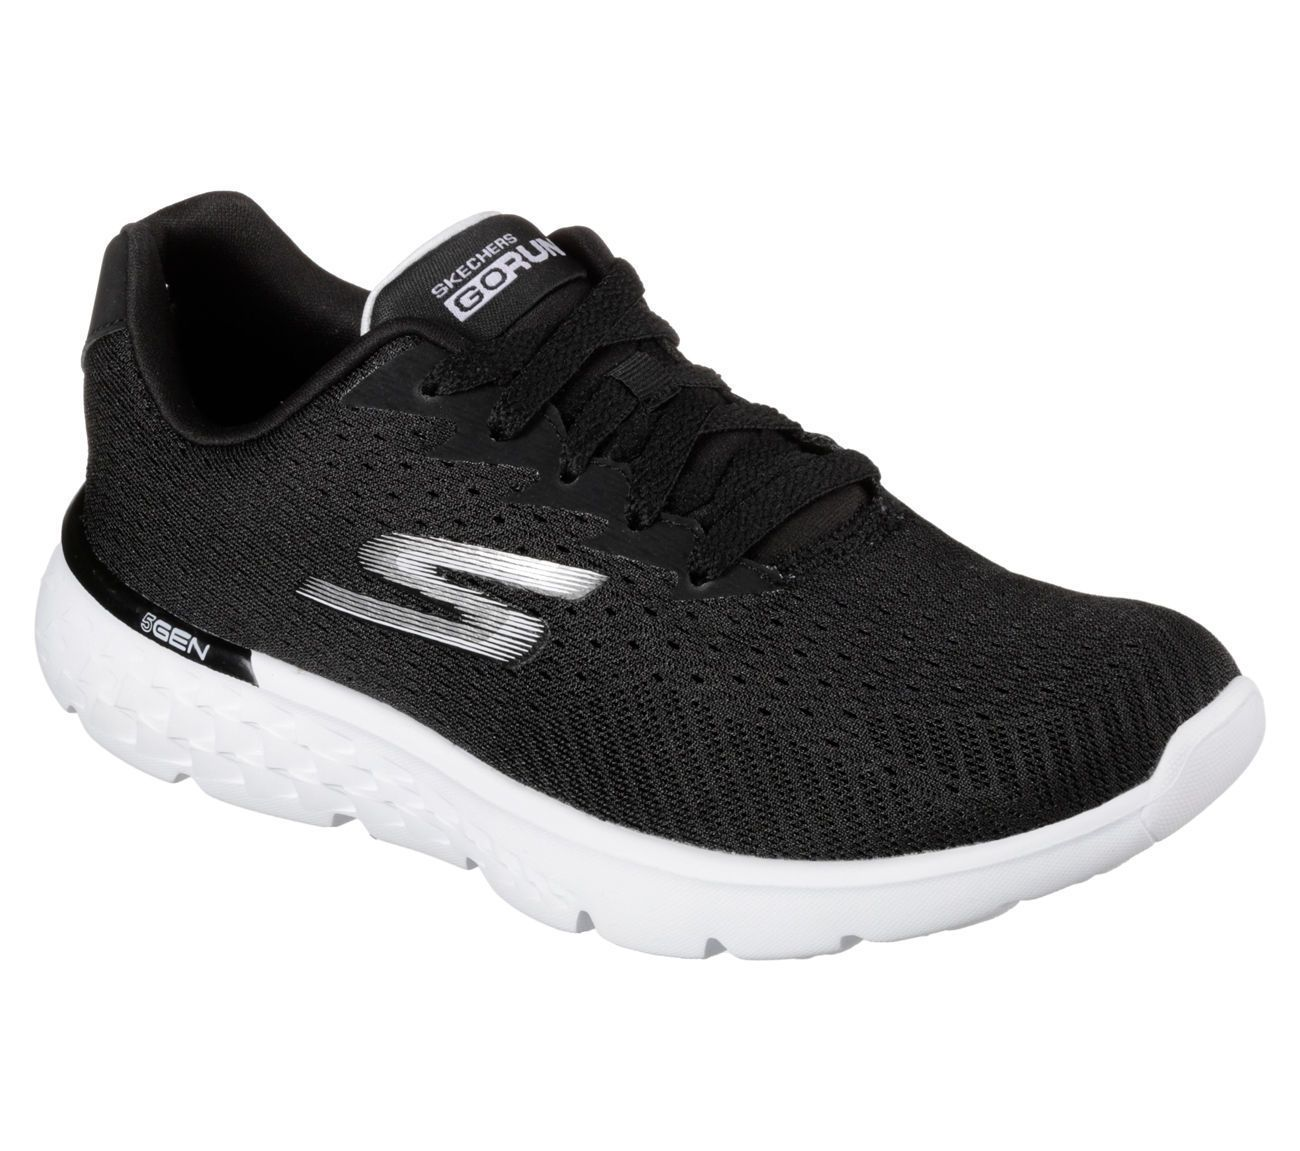 Discount Skechers Go Run 400 White Women's Shoes